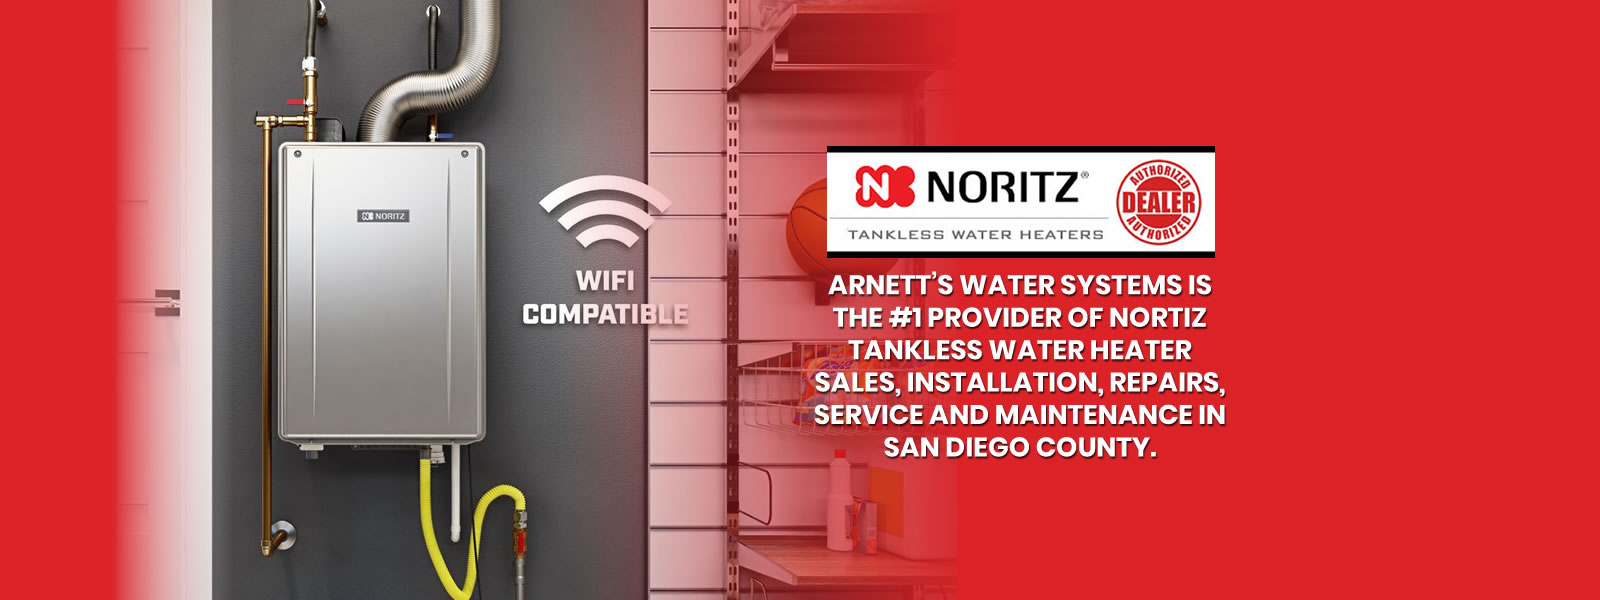 Arnetts Water Systems Provider of Nortiz Tankless Water Heater Sales Installation and Repairs